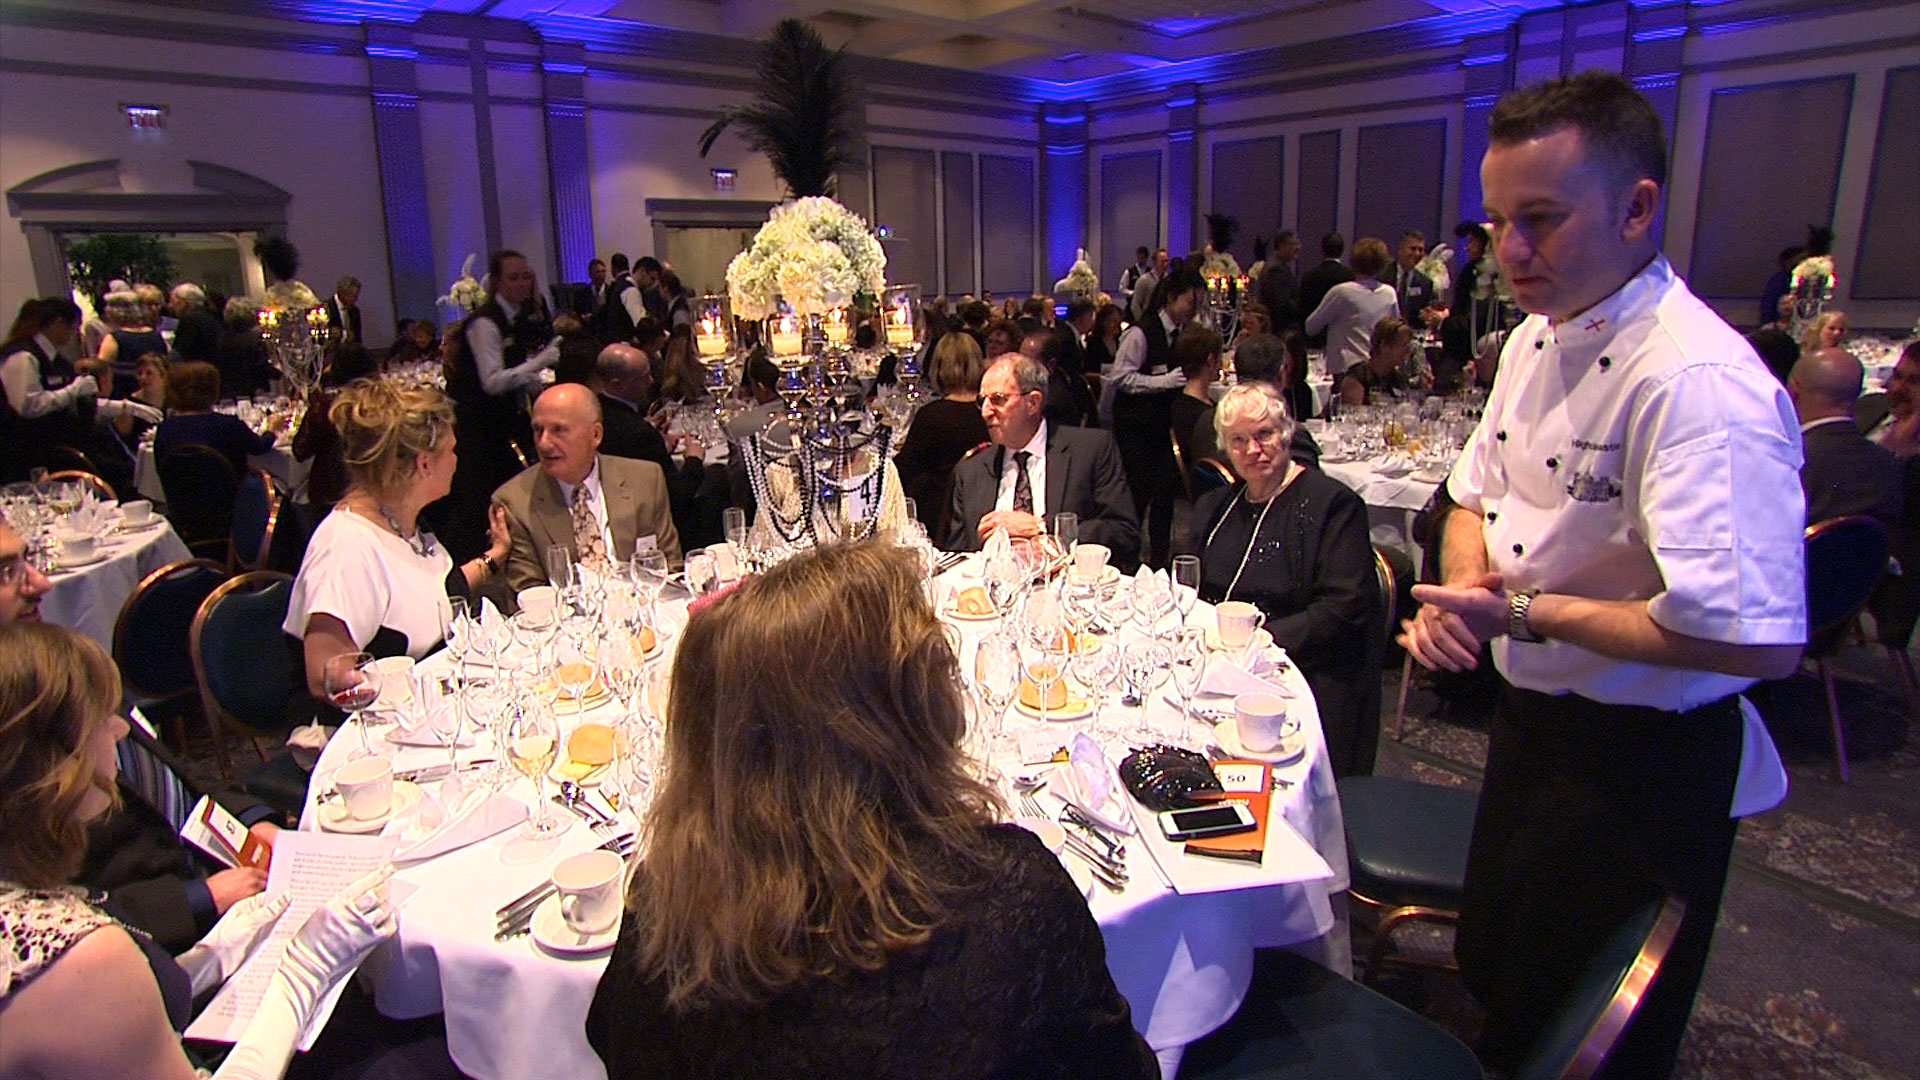 Chef Paul Brooke-Taylor having a discussion with seated dinner guests at the 2015 WPSU Connoisseur's Dinner